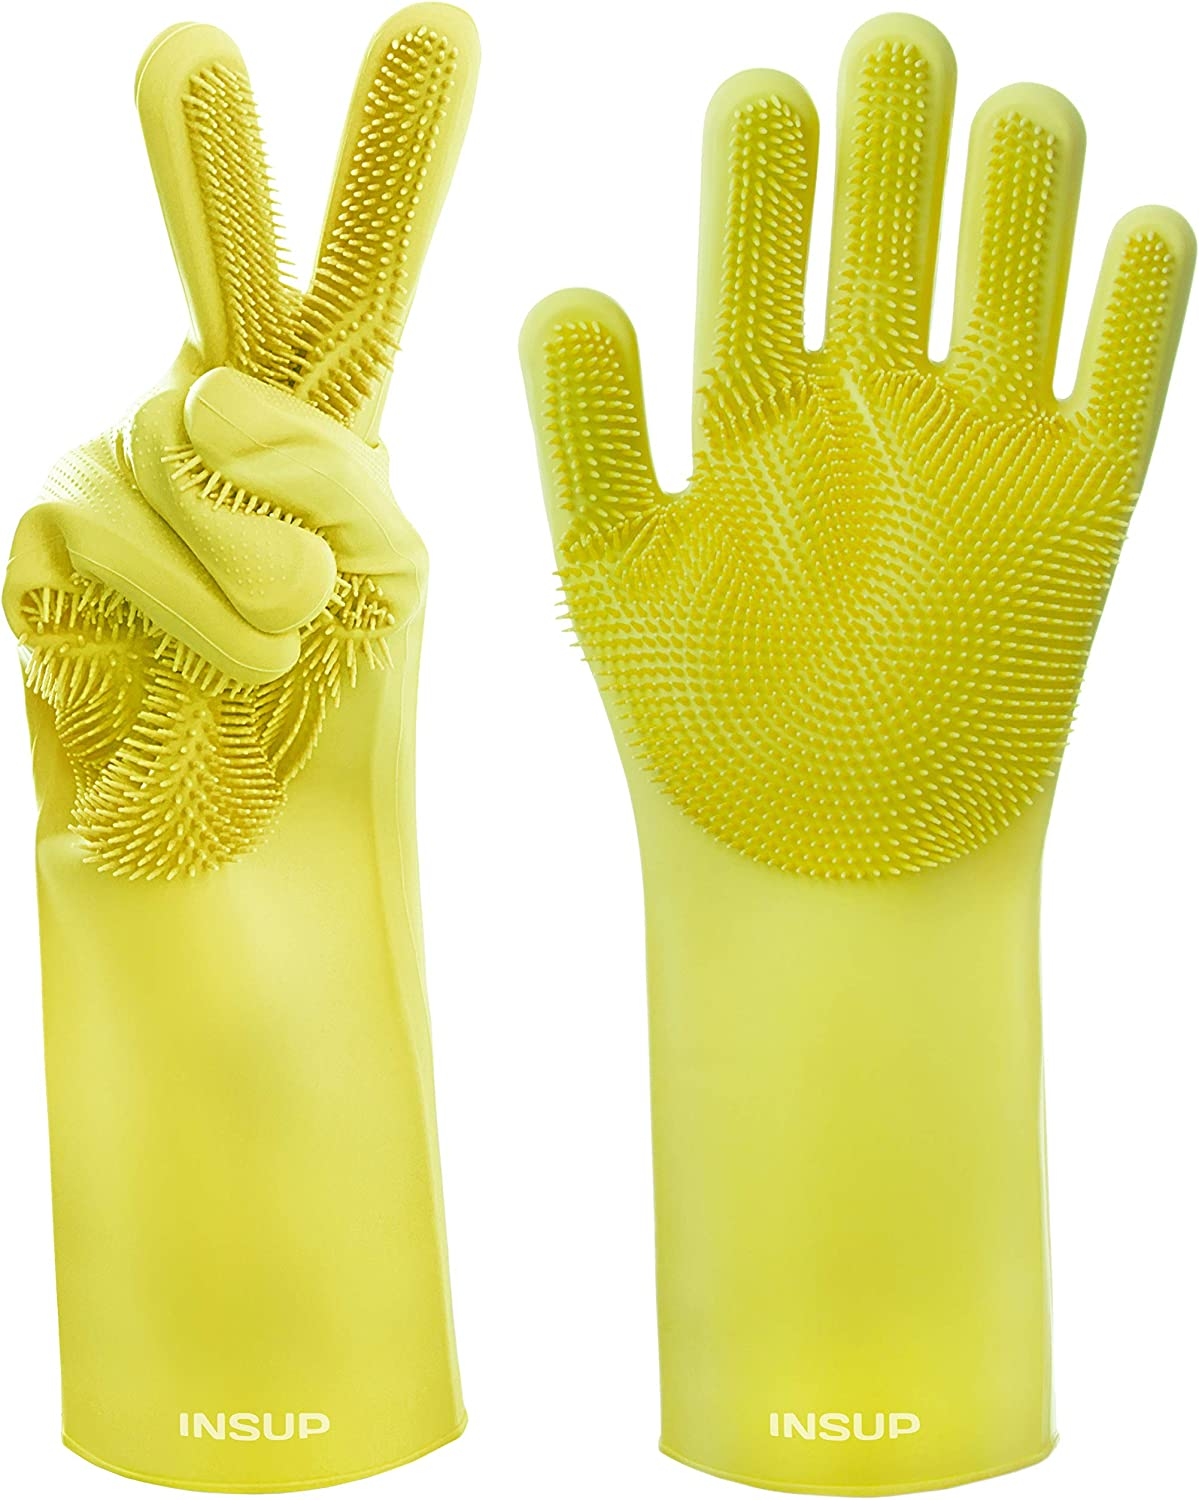 INSUP Premium Dishwashing Gloves with Bristles - Magical Cleaning Gloves Washing Mitts with Scrubbers Best for Household and Multi Purpose Use - Scrub for Kitchen Gloves (Yellow)